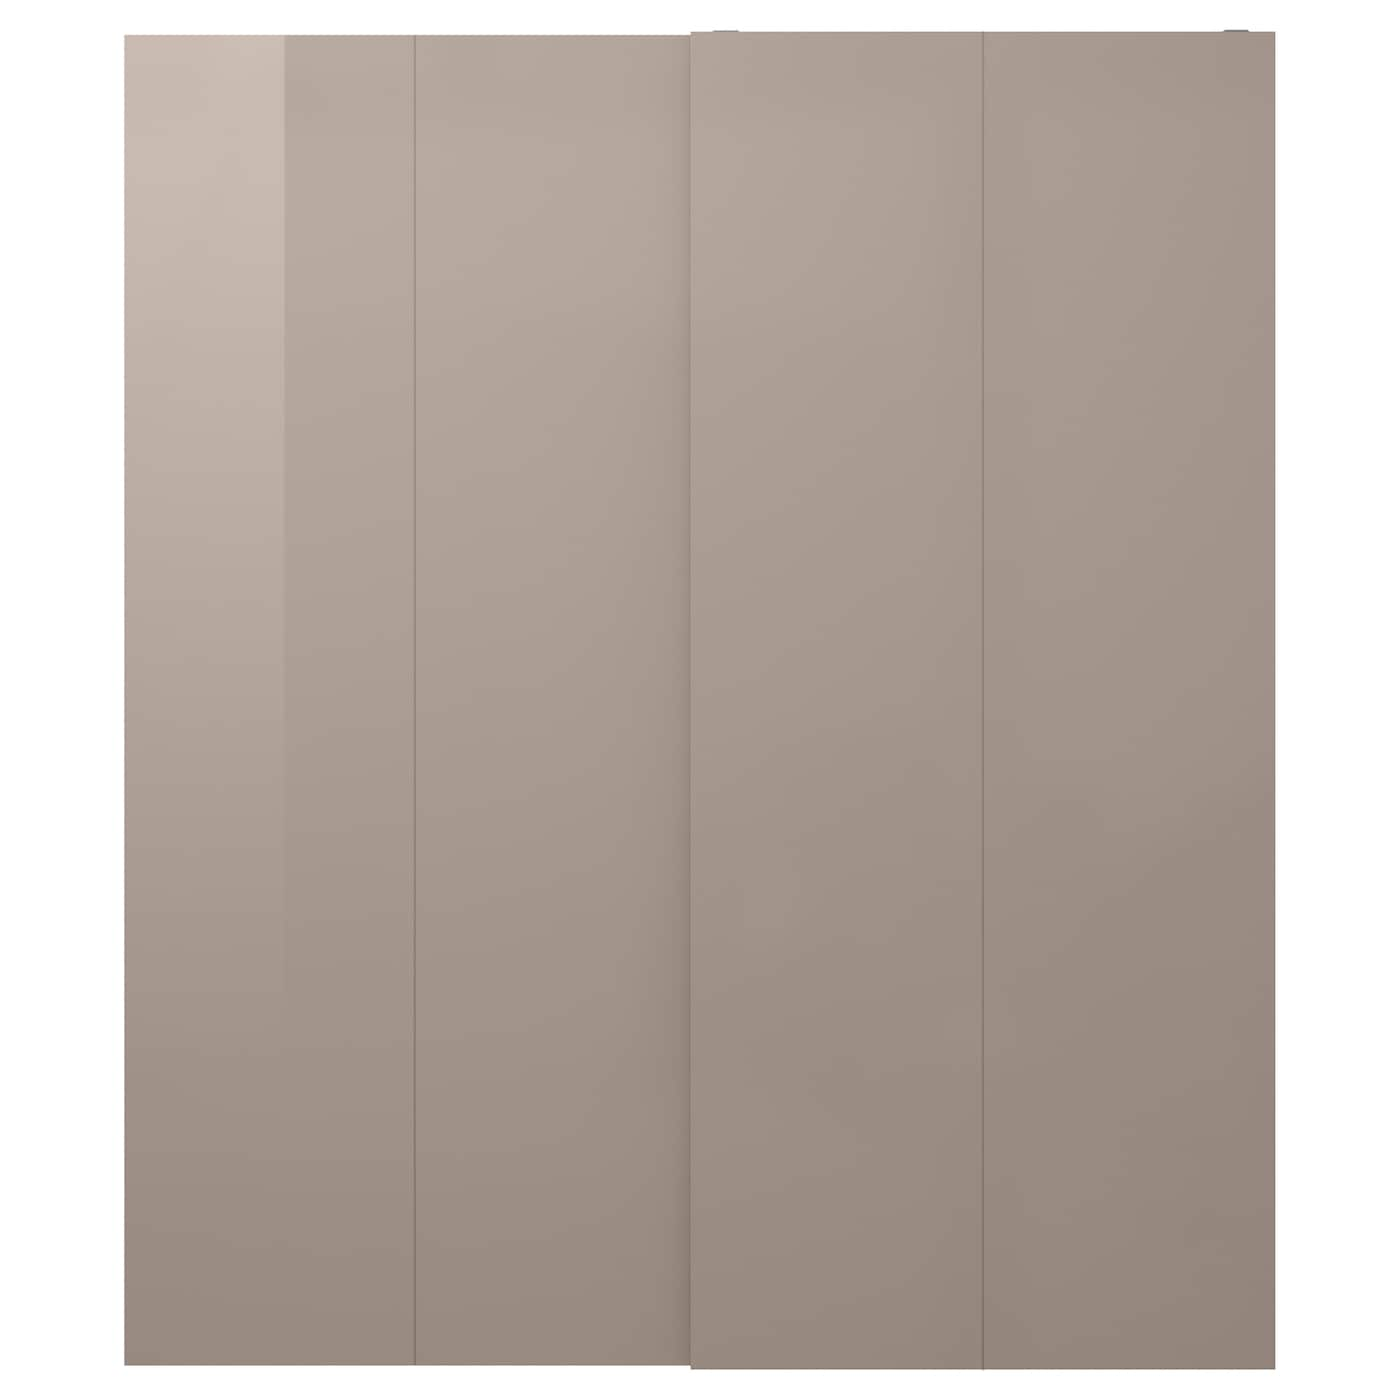 hasvik pair of sliding doors high gloss dark beige 200x236